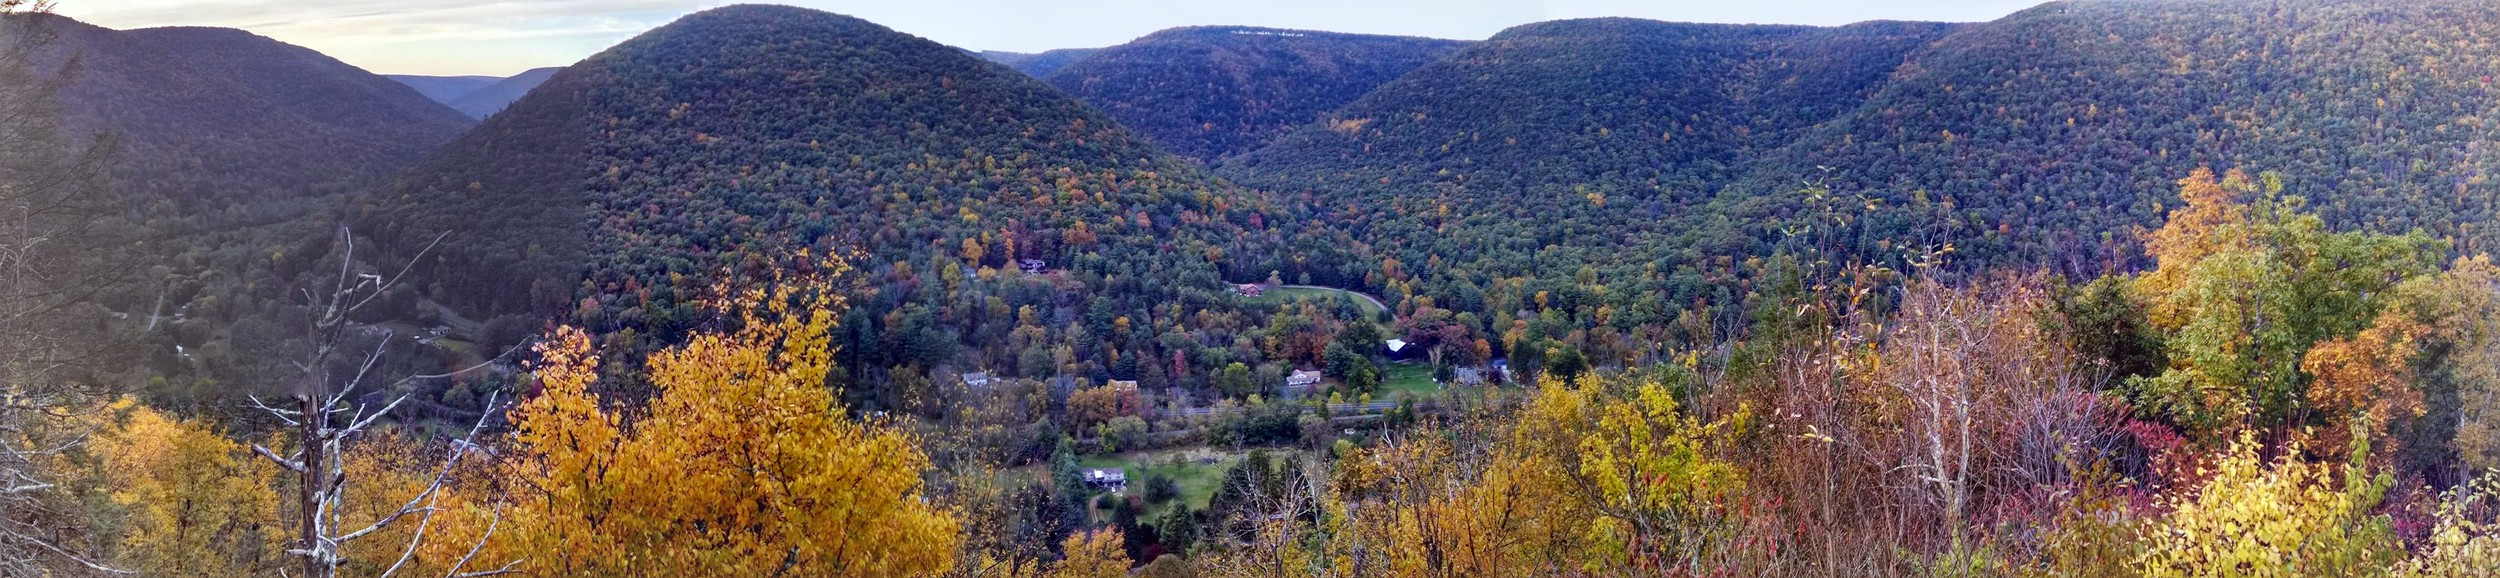 View from one of the trails looking down on Ramsey.